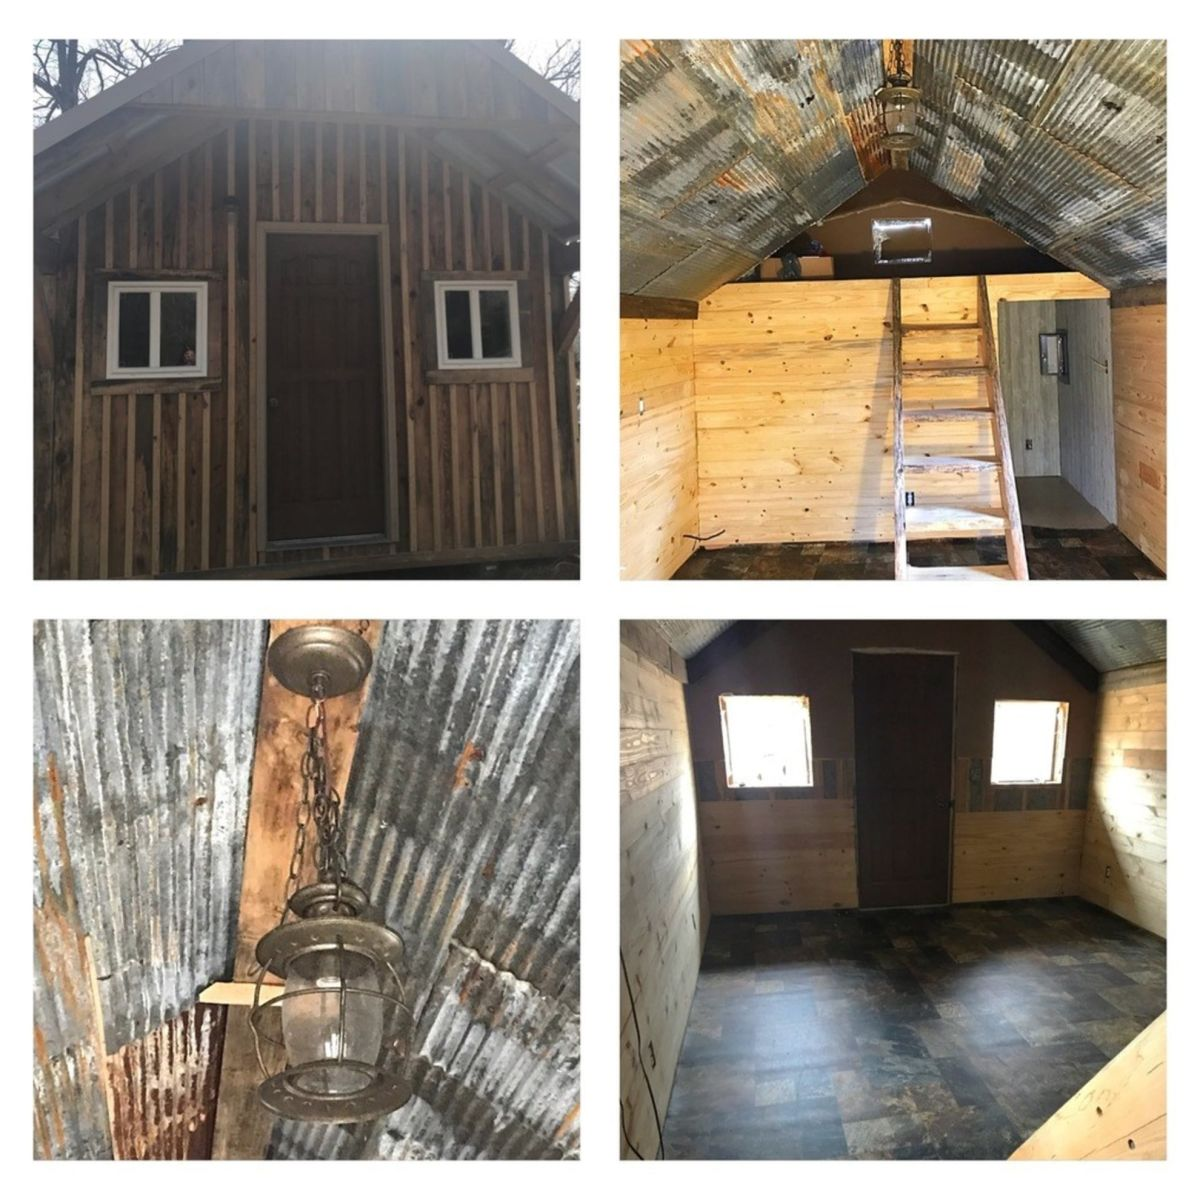 Cabin For Sale In Potosi, Missouri